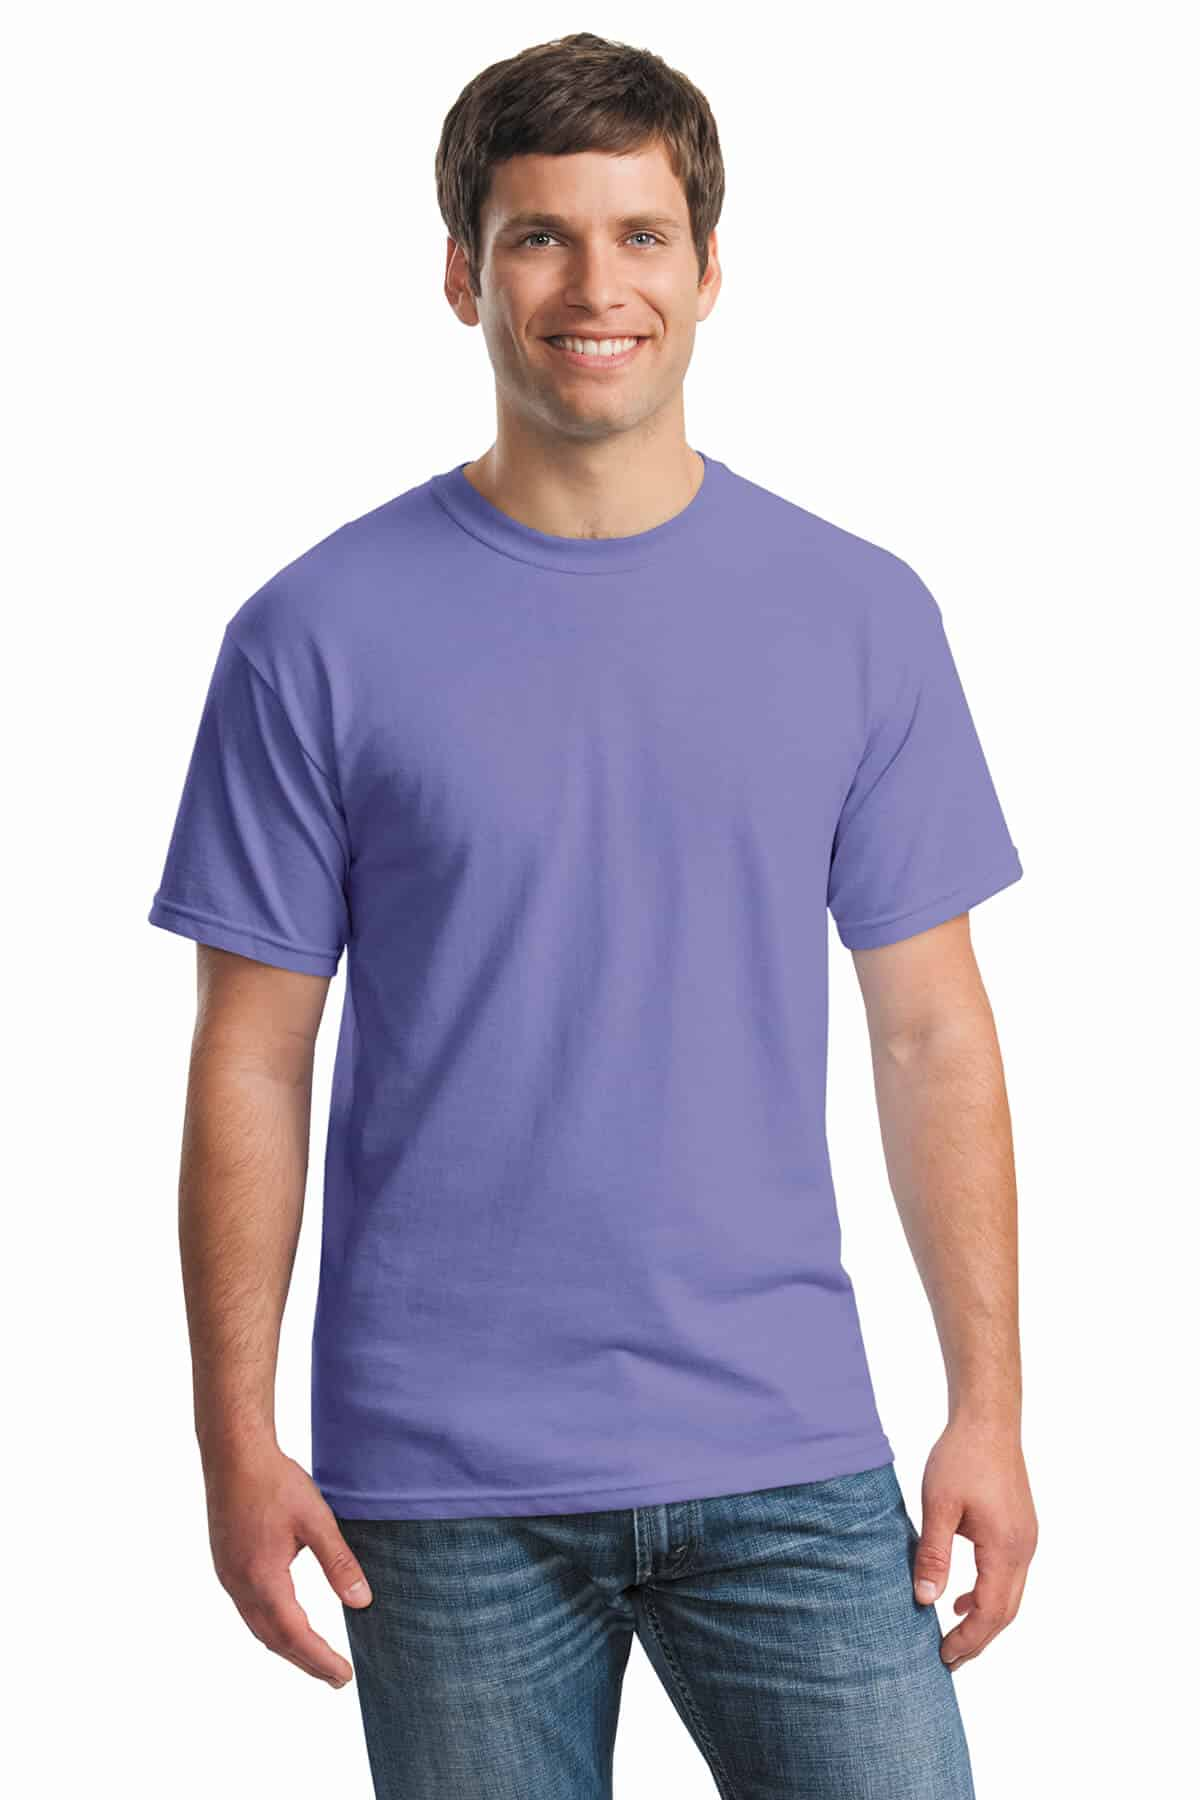 Violet Tee Front